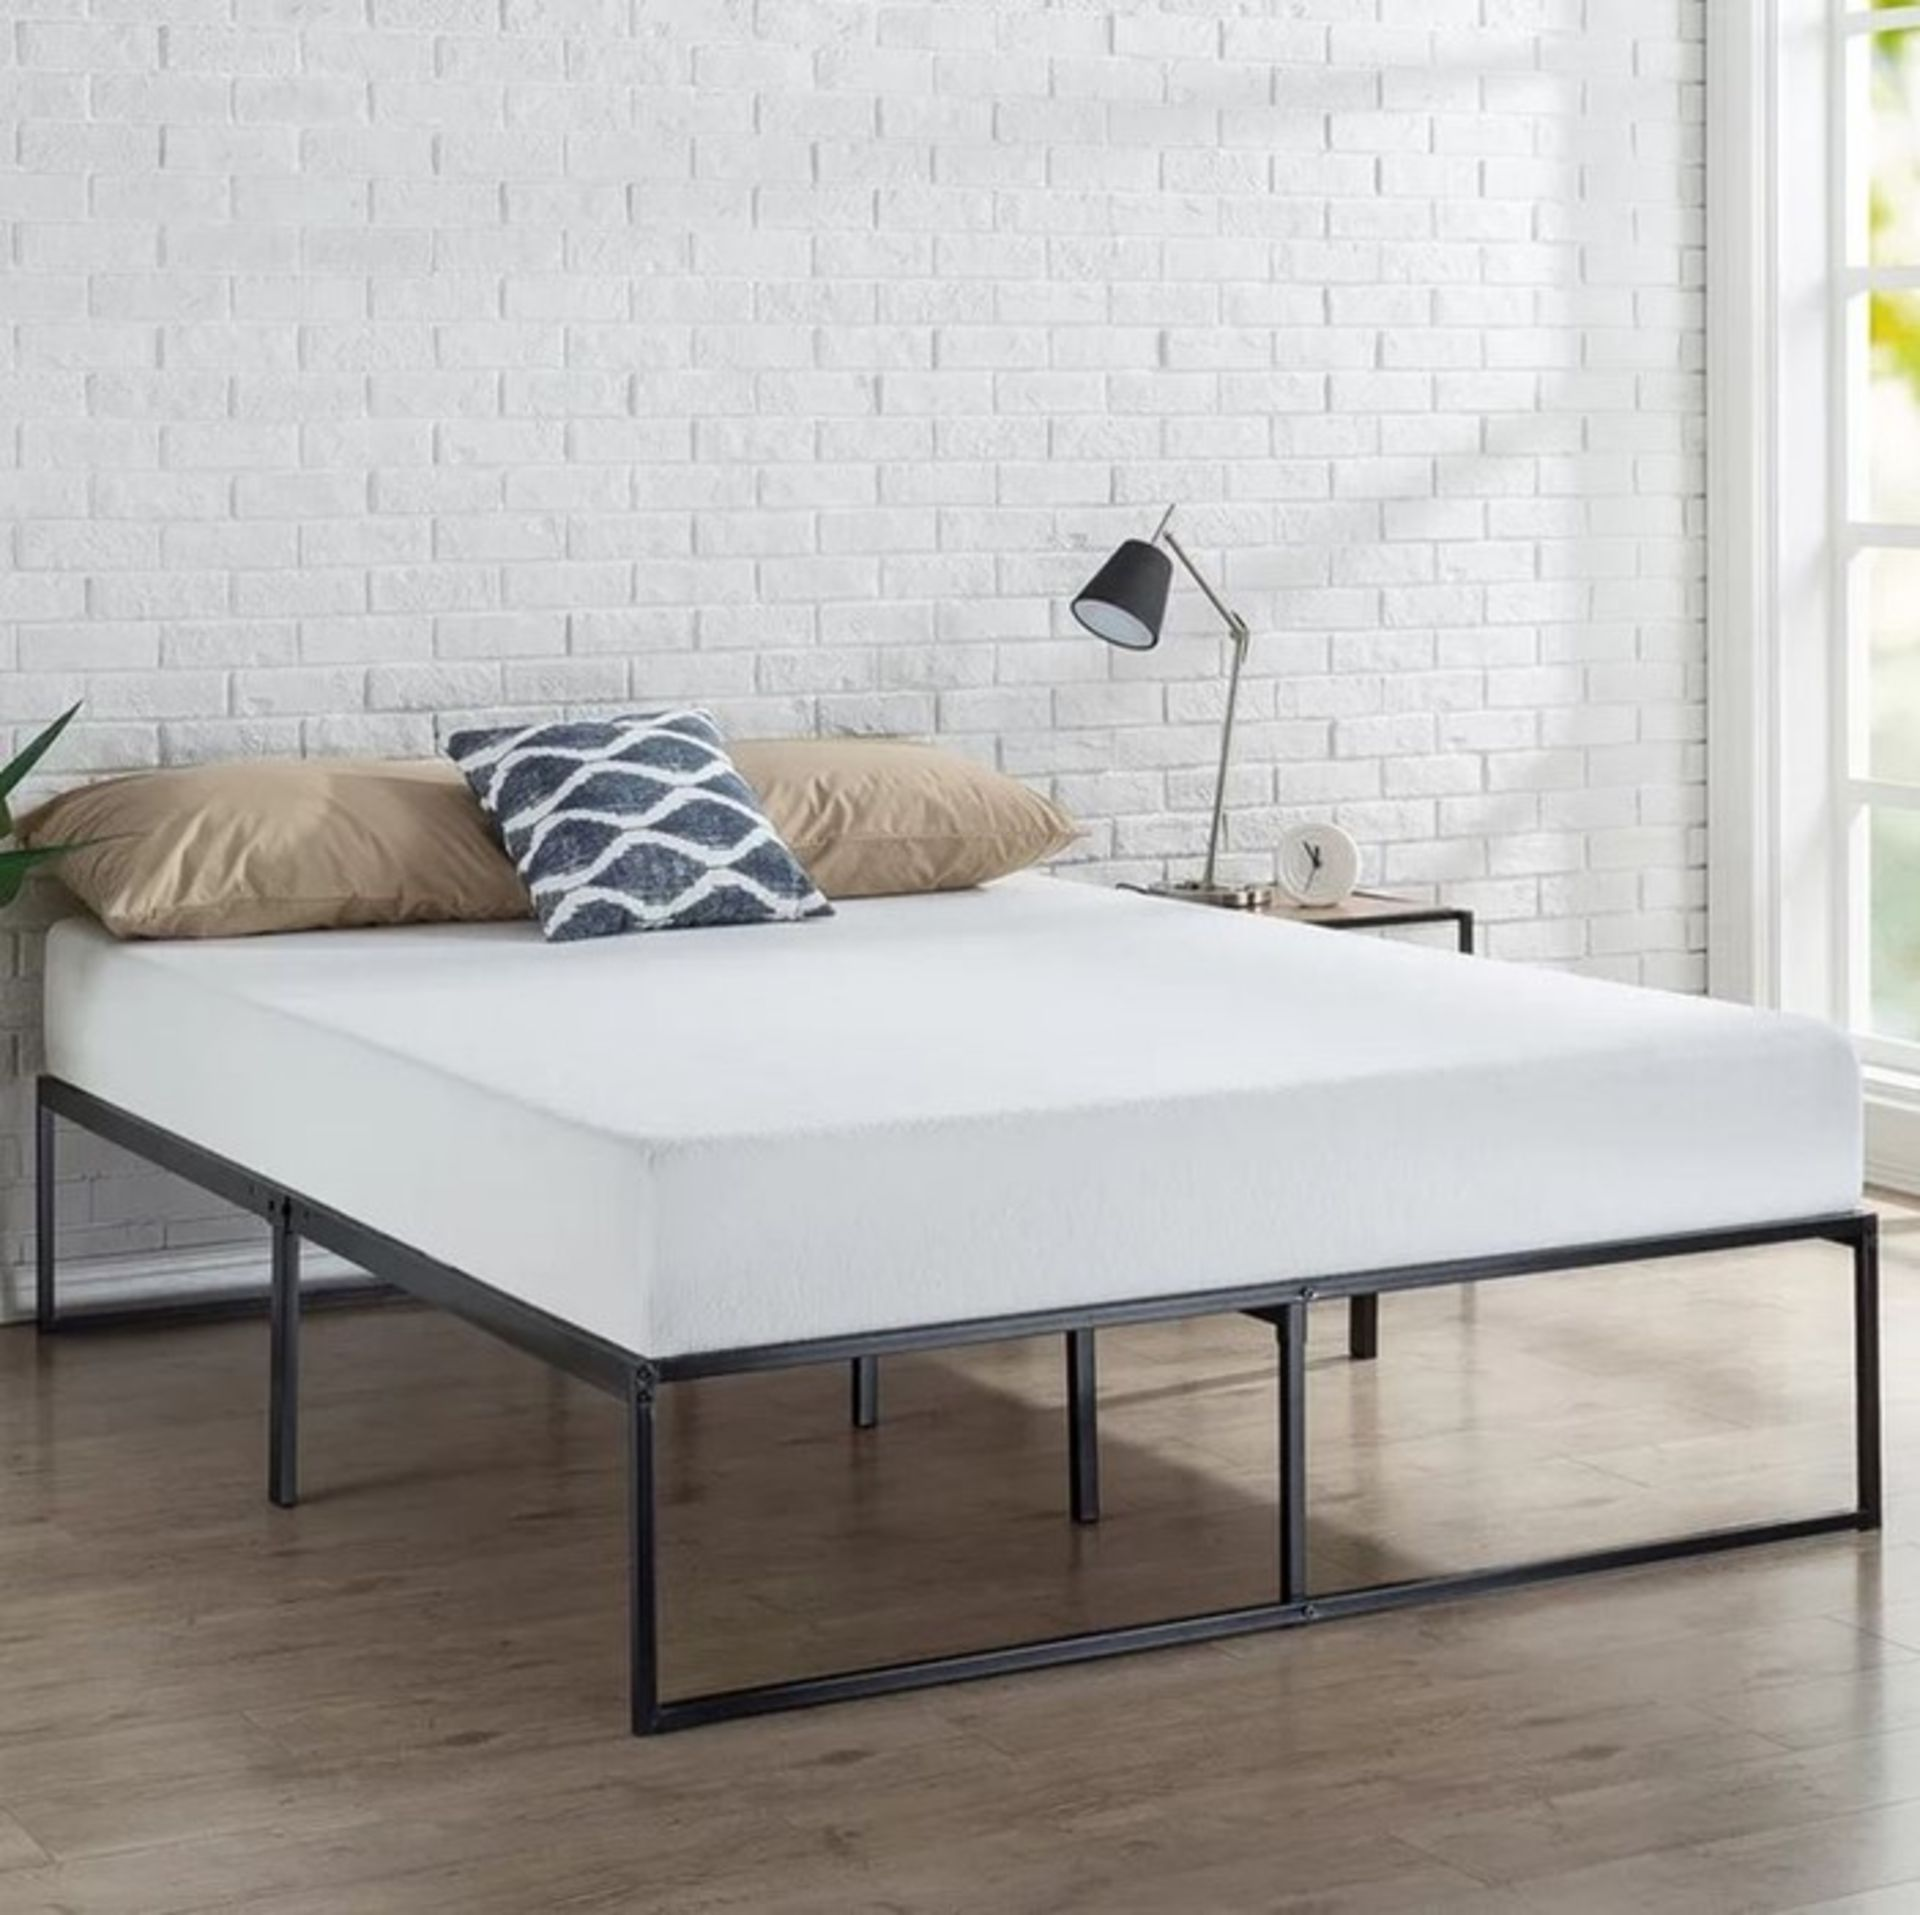 UPLANDER PLATFORM BED FRAME / SIZE: SUPER KING (6')